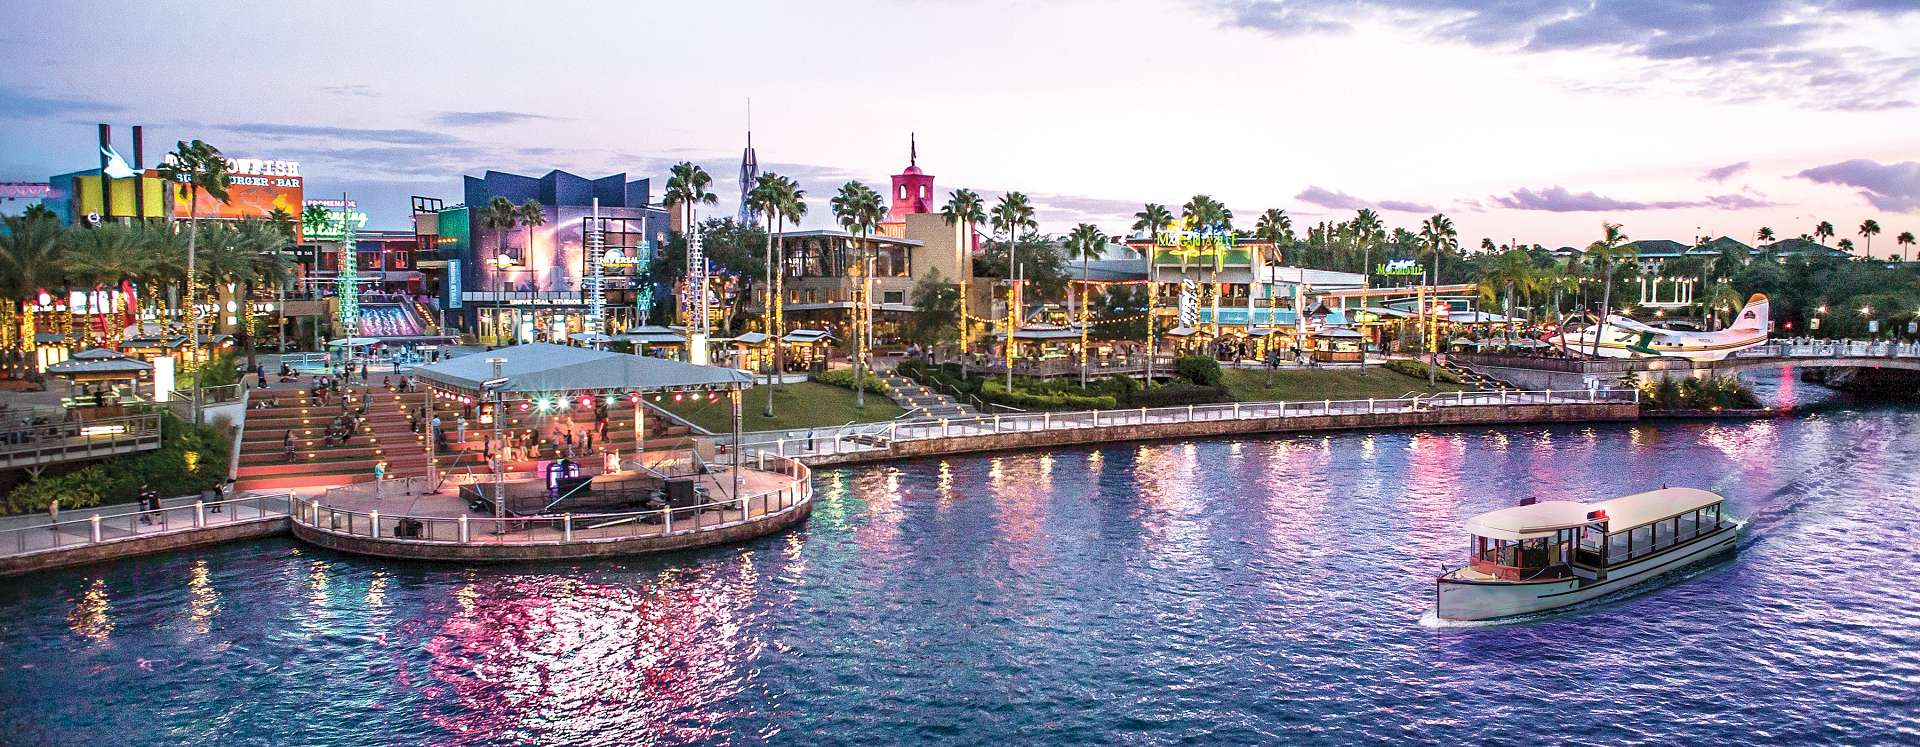 Citywalk at Universal Orlando Resort provides a multitude of entertainment and restaurants for friends and family.